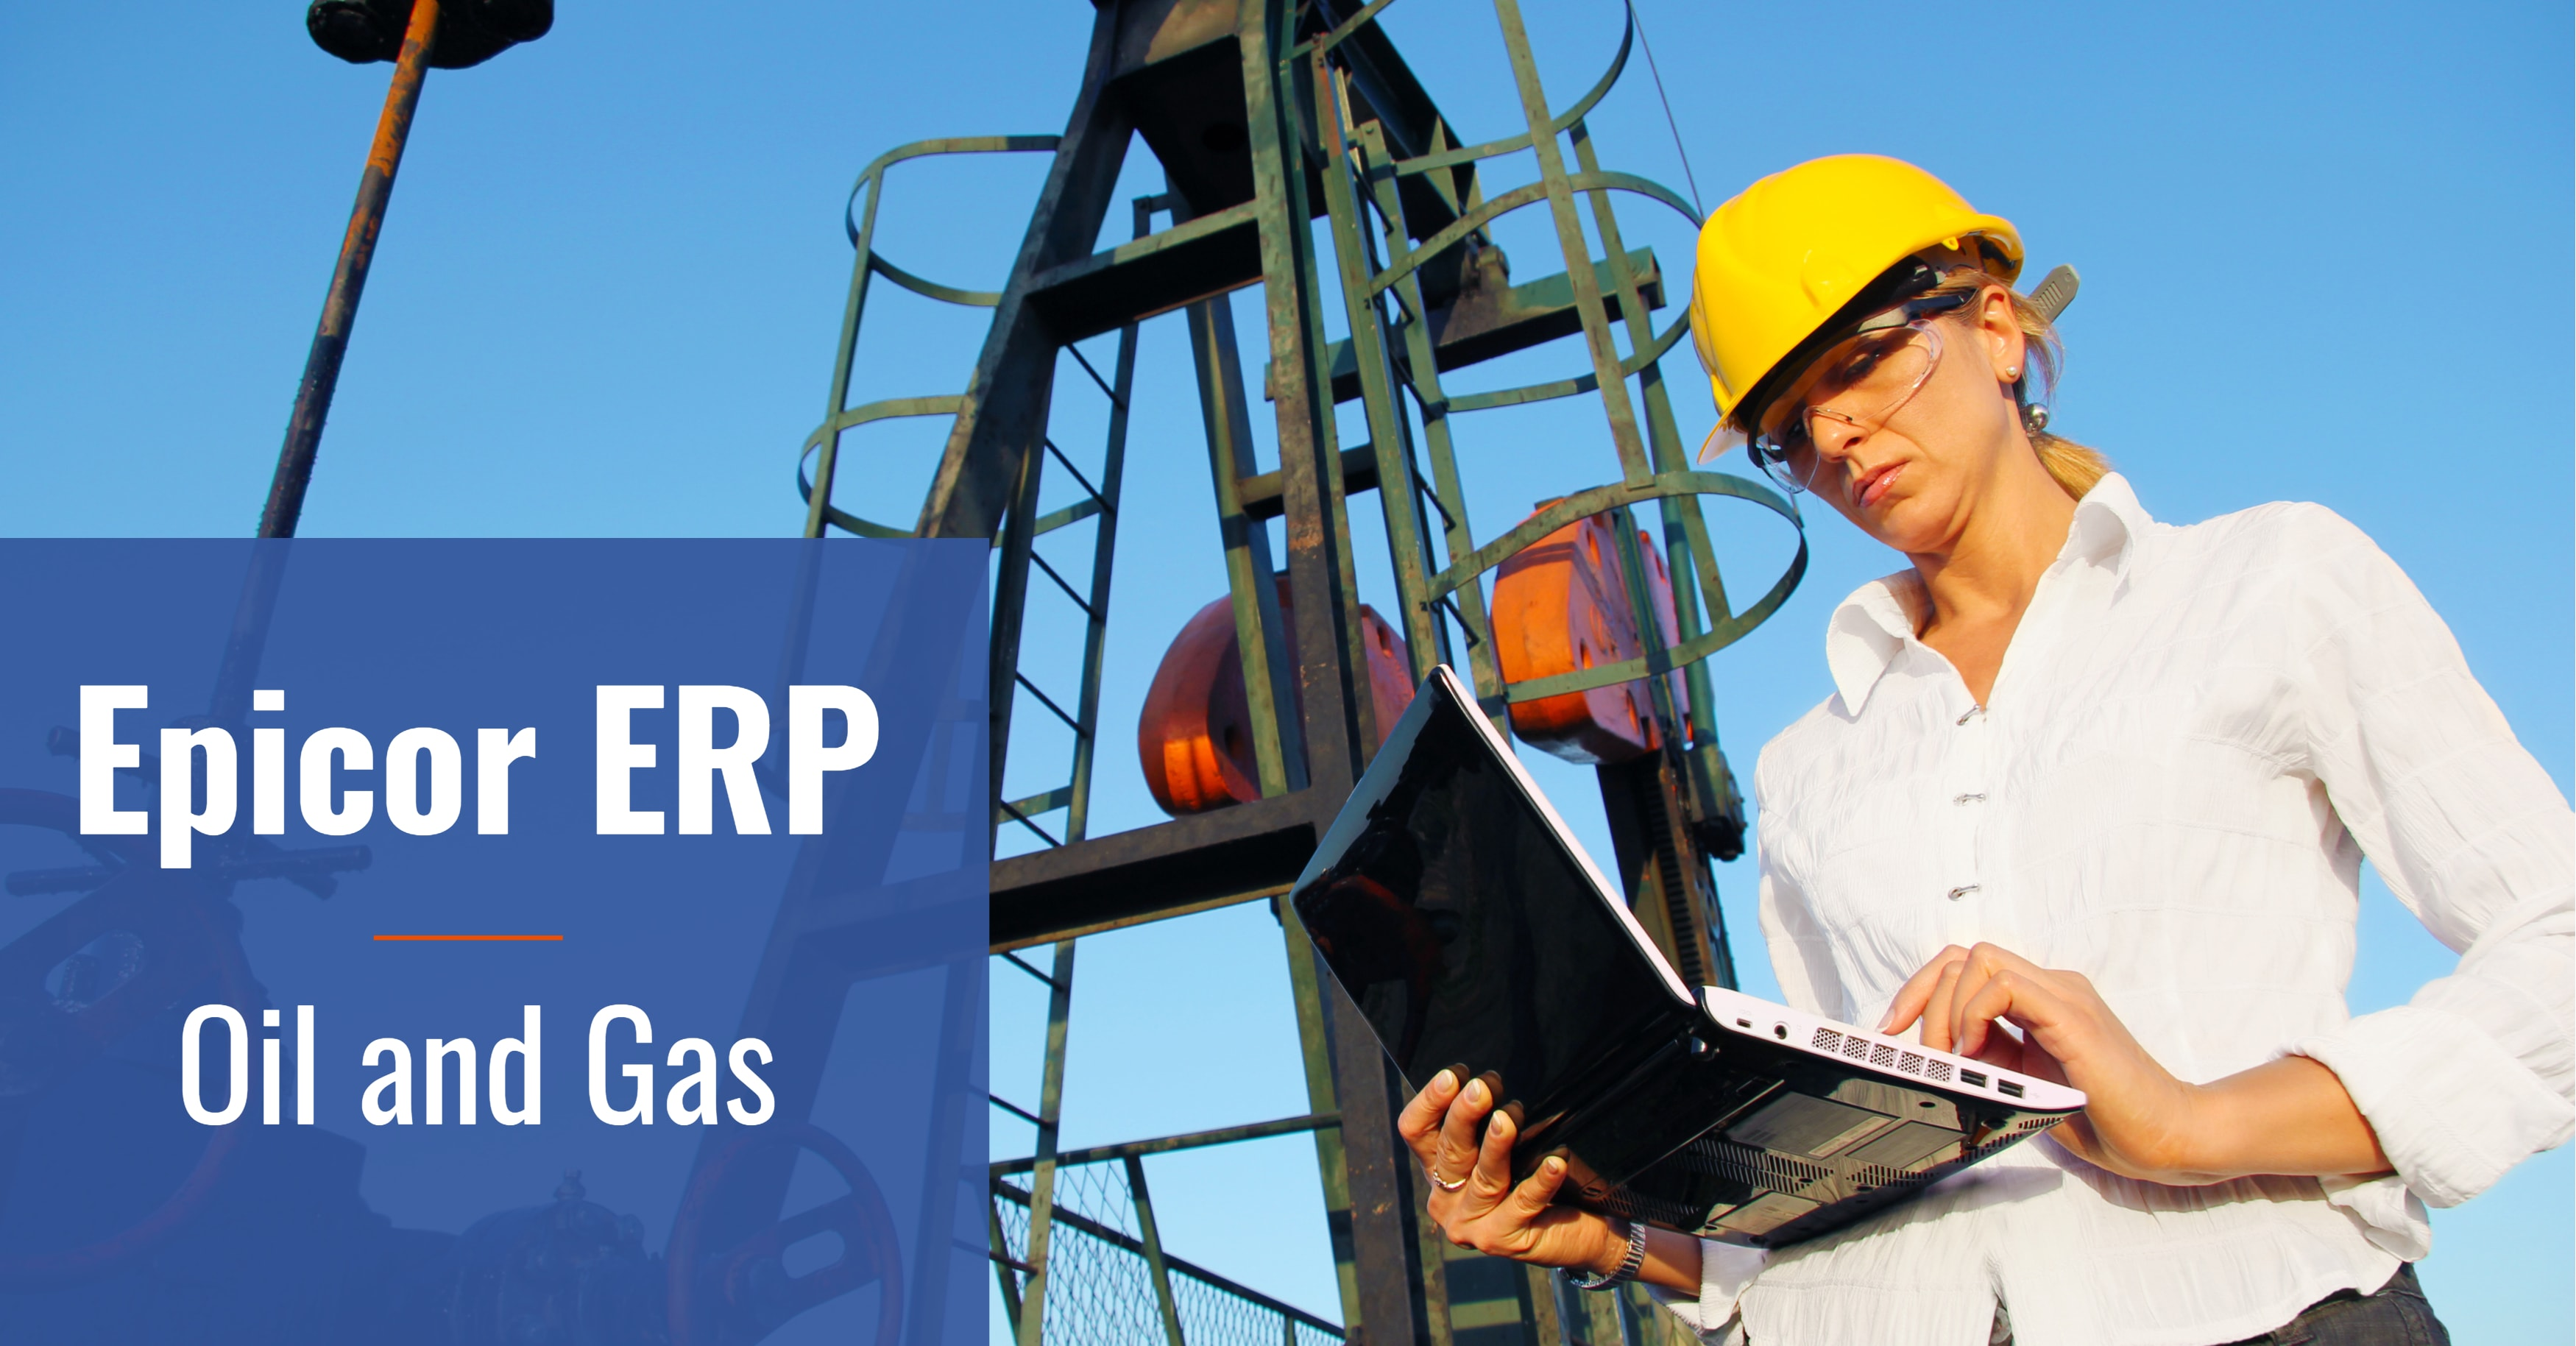 Epicor ERP Oil Gas